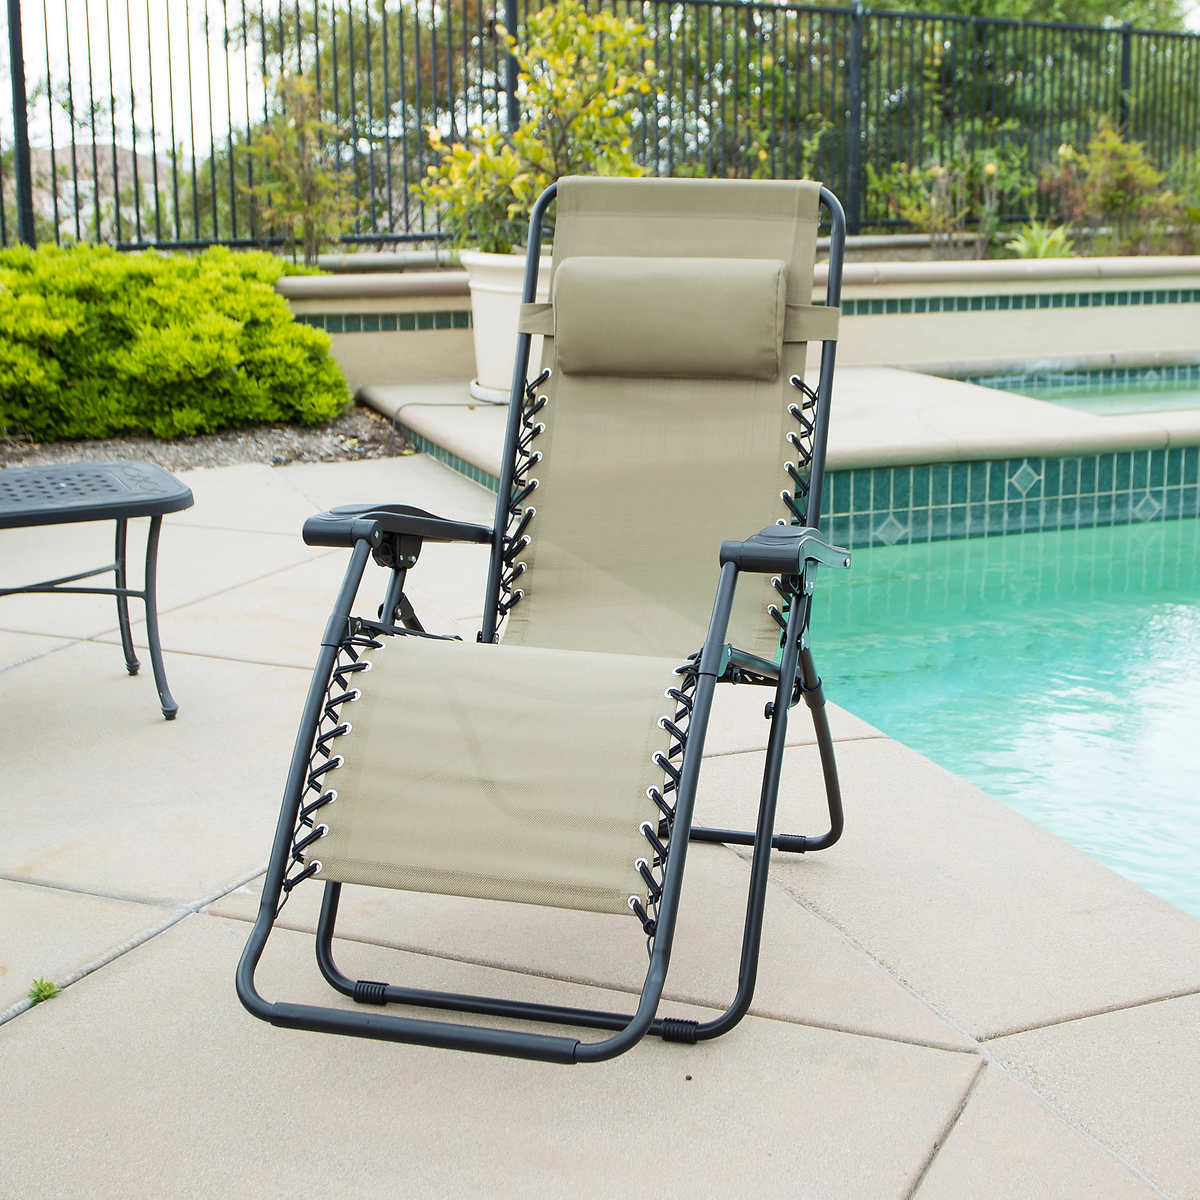 Folding outdoor lounge chair - Zero Gravity Reclining Outdoor Lounge Chair Click To Zoom